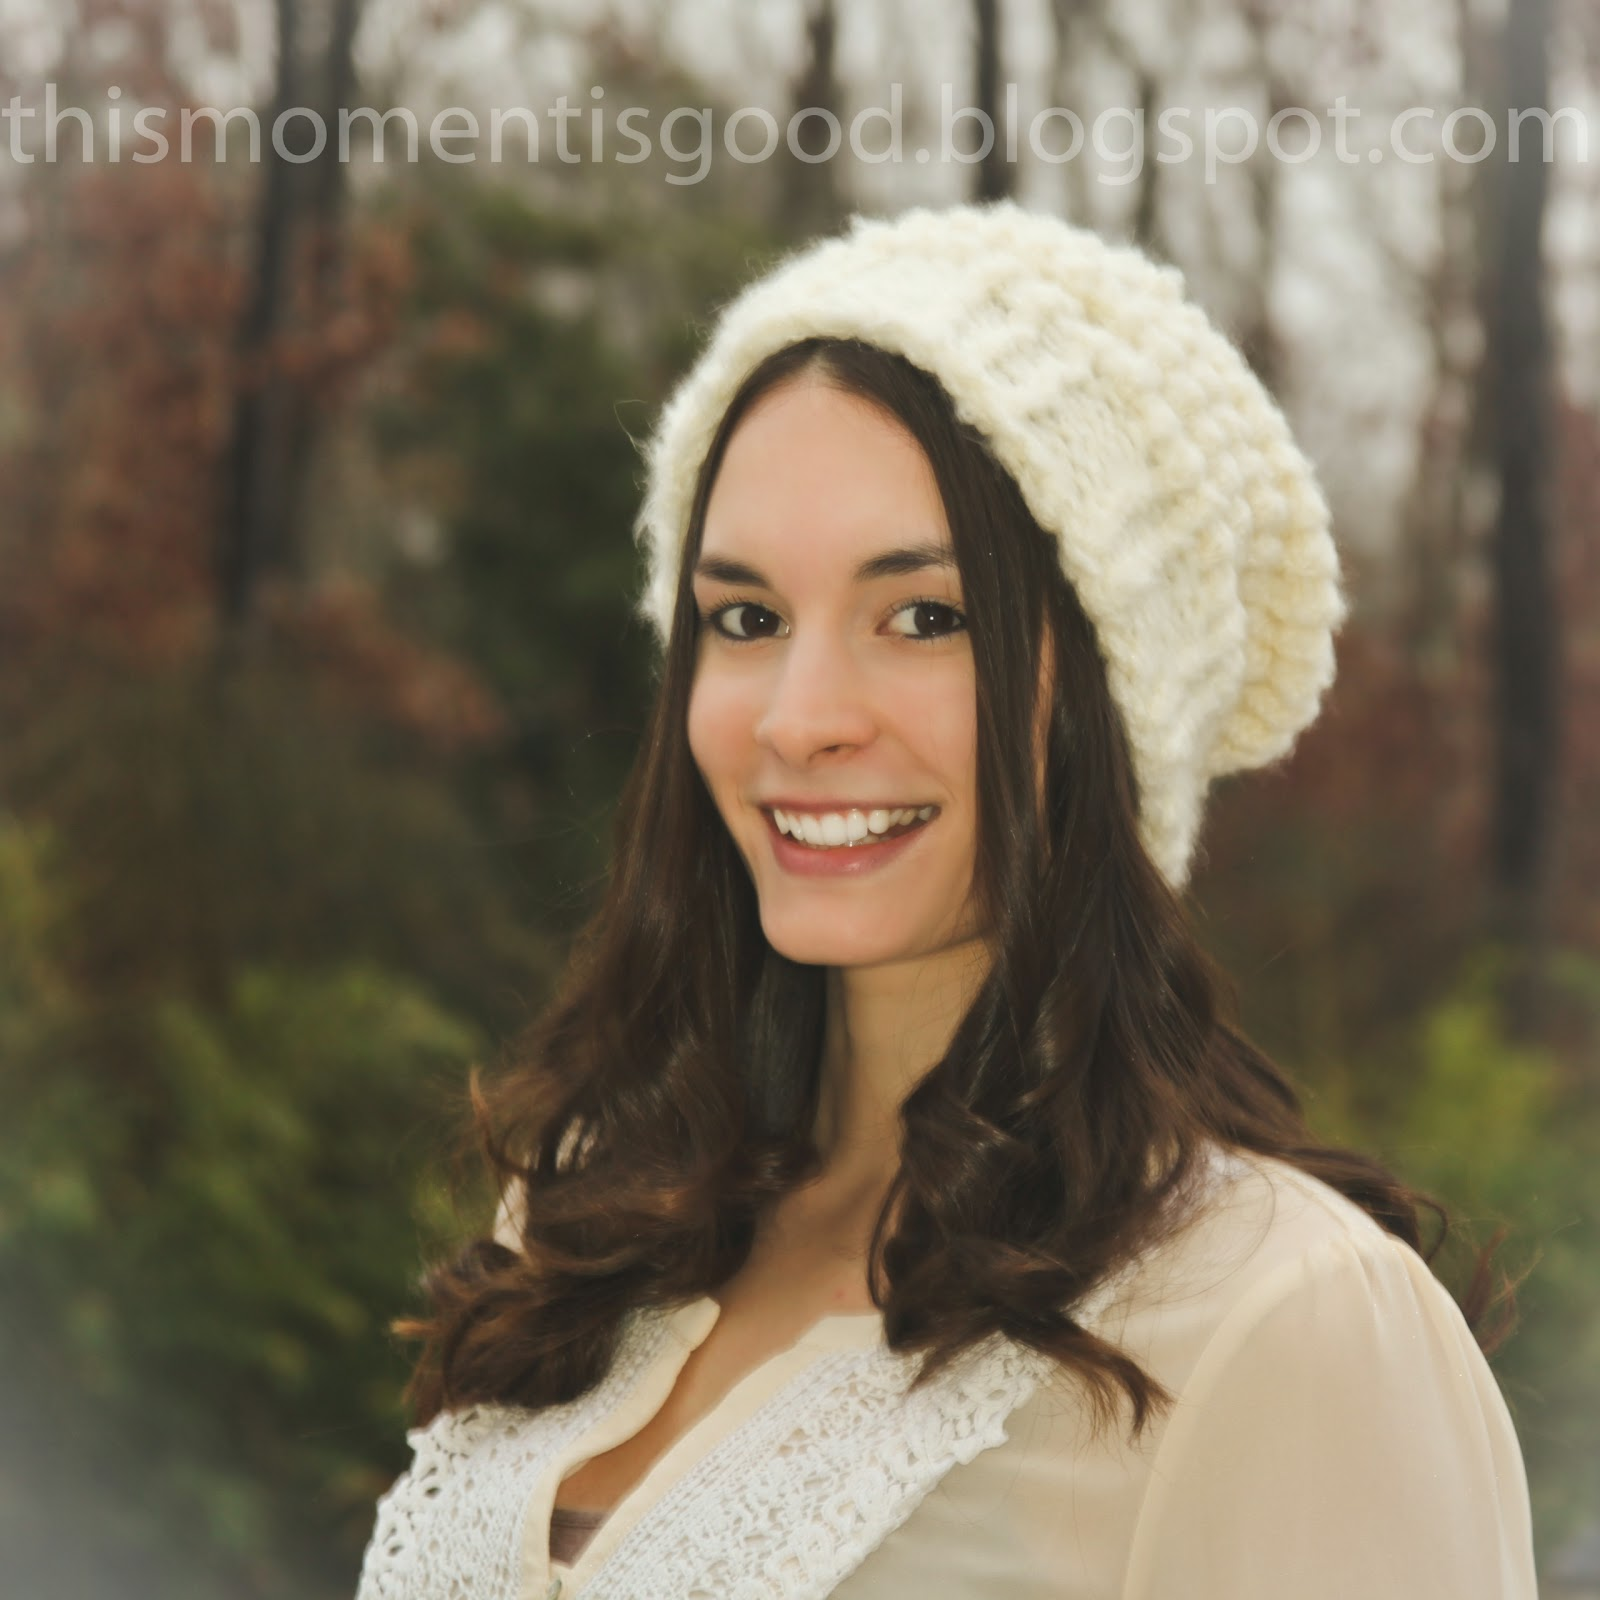 NEW LOOM KNIT VINTAGE STYLE HAT PATTERNS! | Loom Knitting by This ...